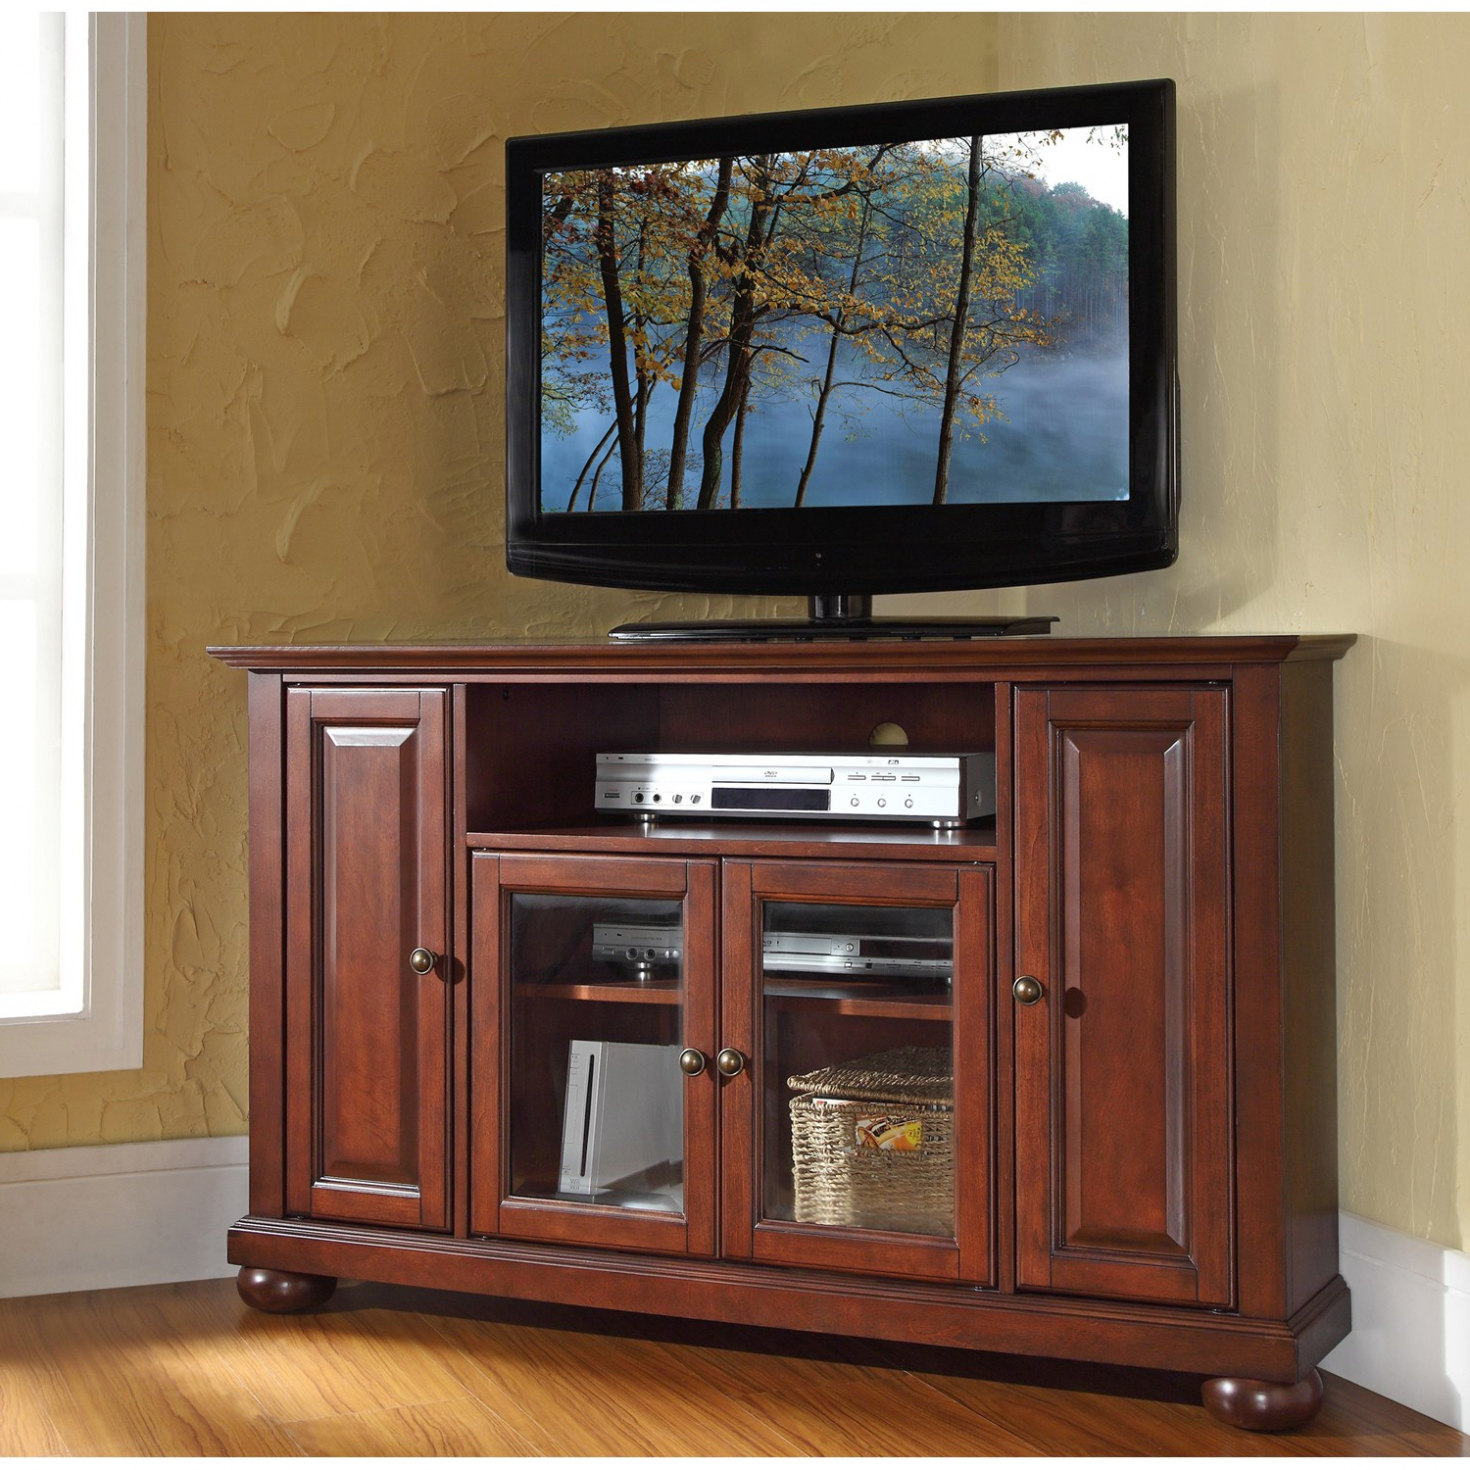 Most Up To Date Corner Tv Stand 50 Inch Flat Screen Fresh Stands Amazing Design With 50 Inch Corner Tv Cabinets (View 12 of 20)